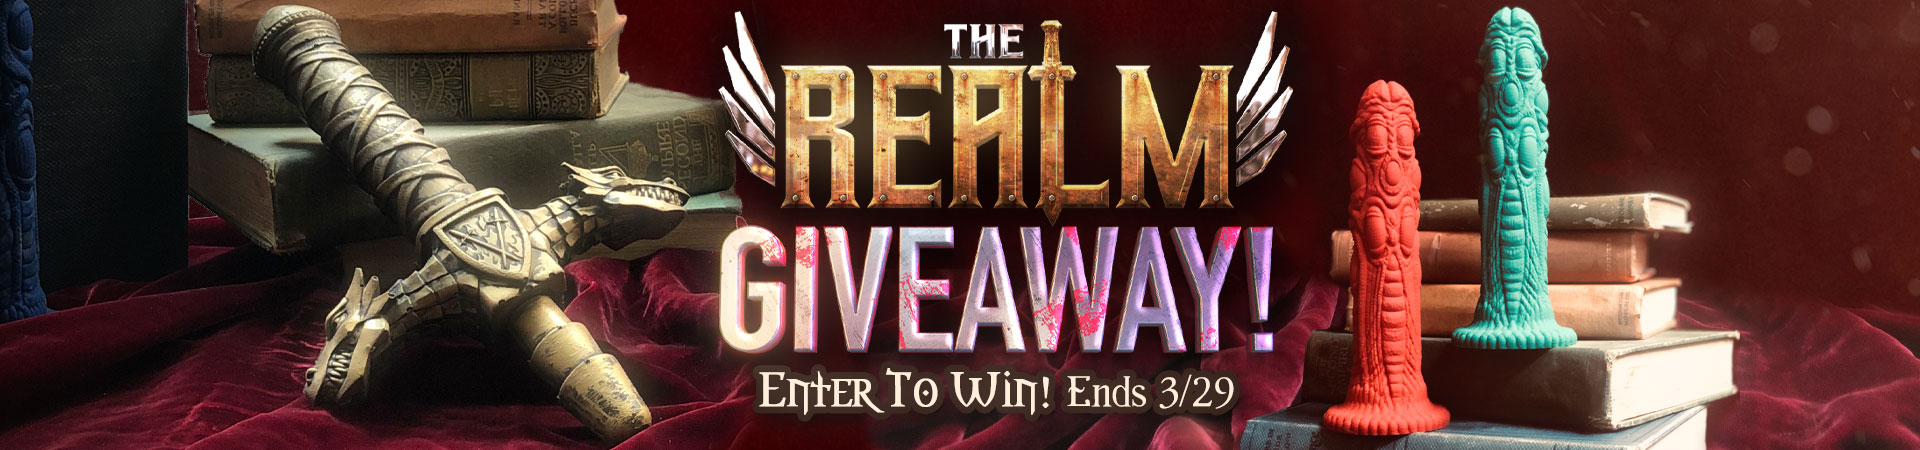 The Realm Giveaway - Enter To Win - Ends 3/29